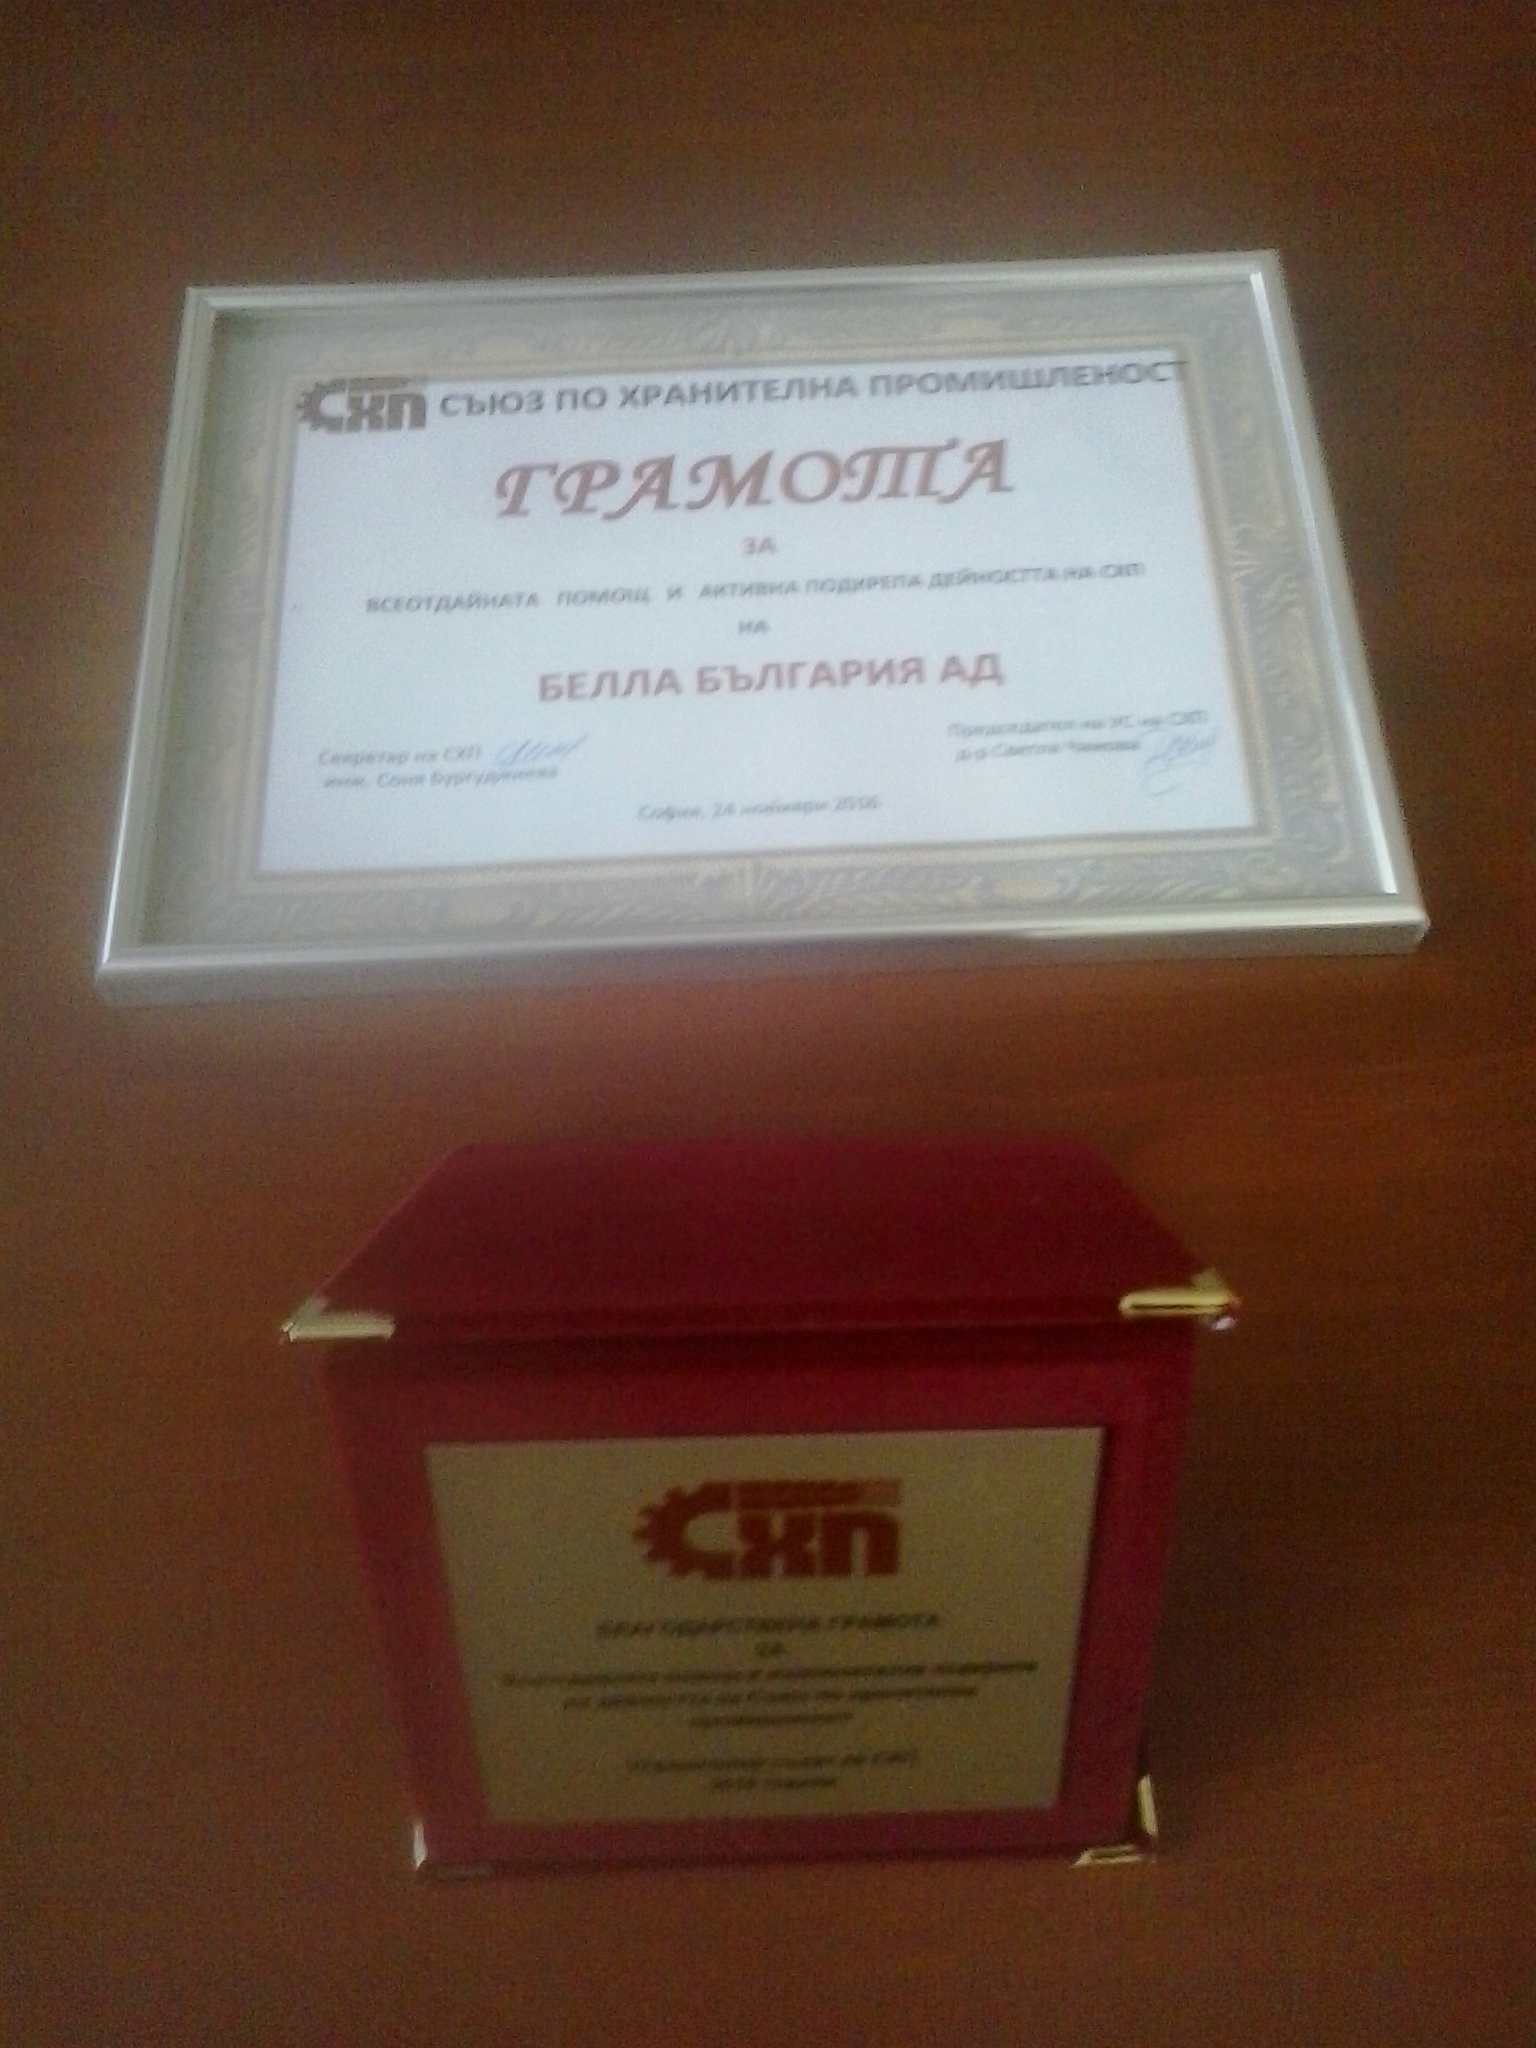 Award for stintless assistance and active support of UFI's activities